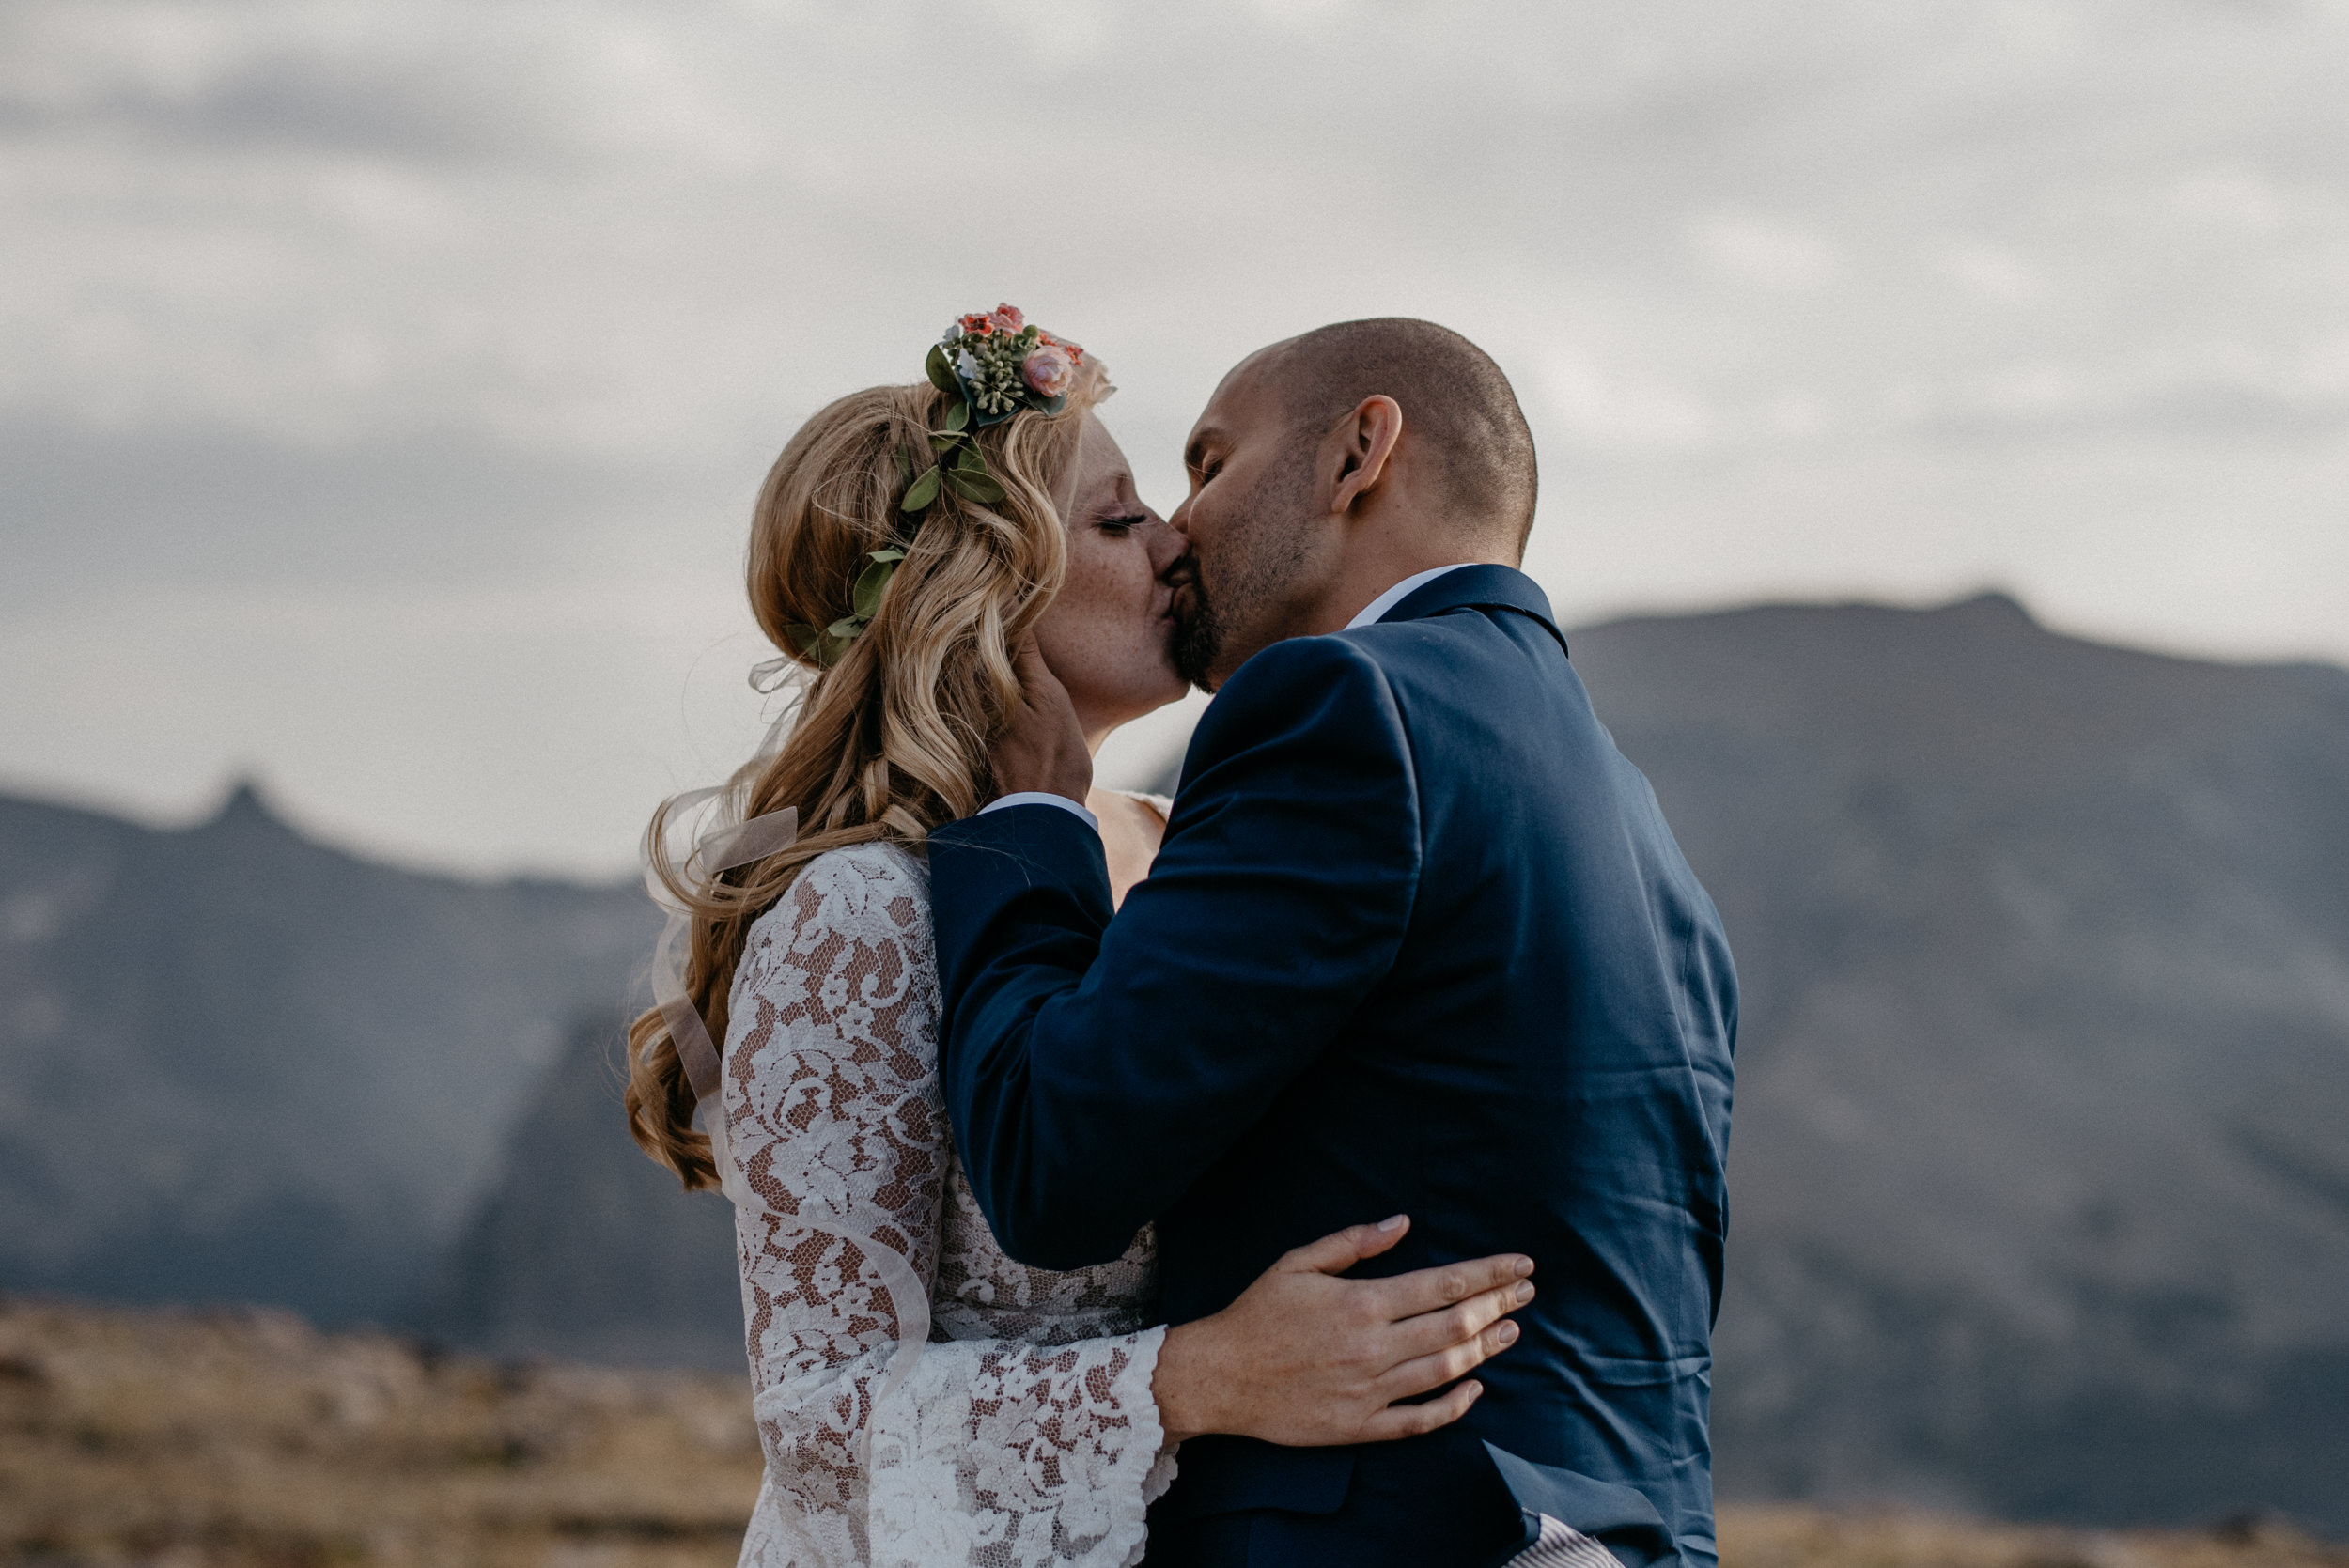 Couples portraits at Trail Ridge Road. Colorado elopement and wedding photographer.